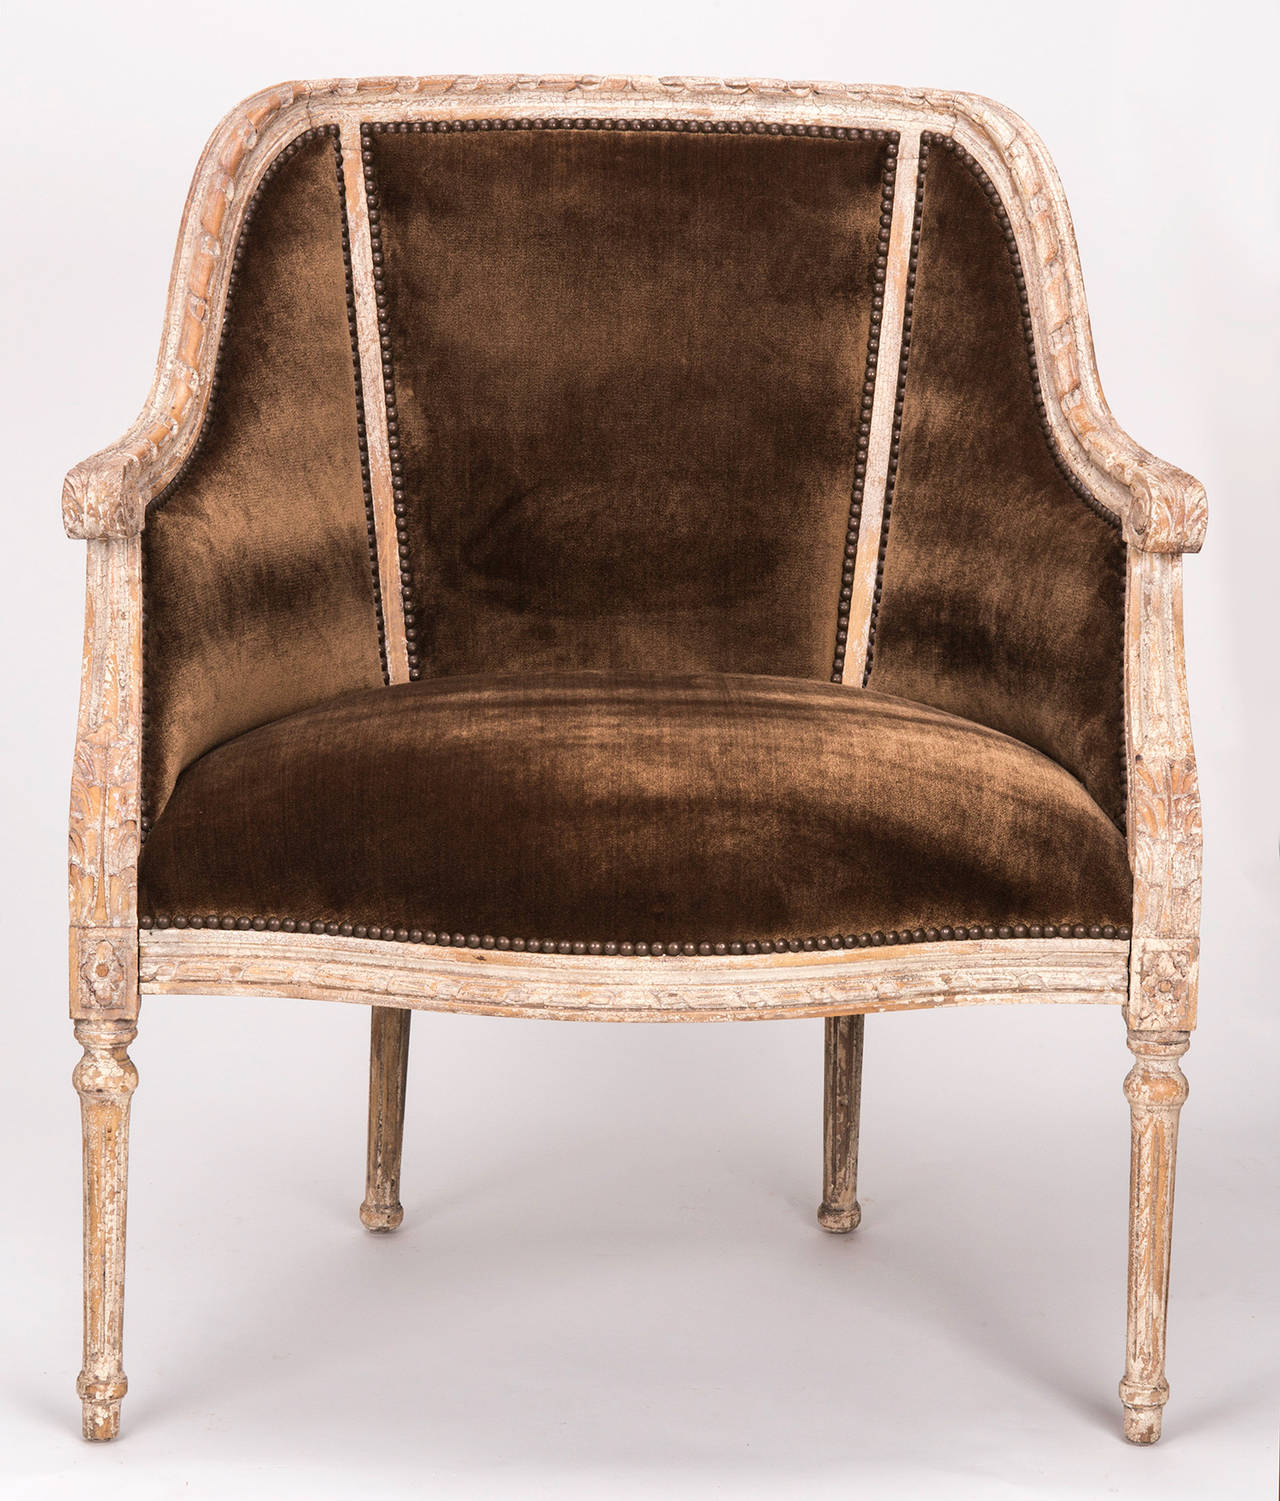 French Cane Back Barrel Chair at 1stdibs